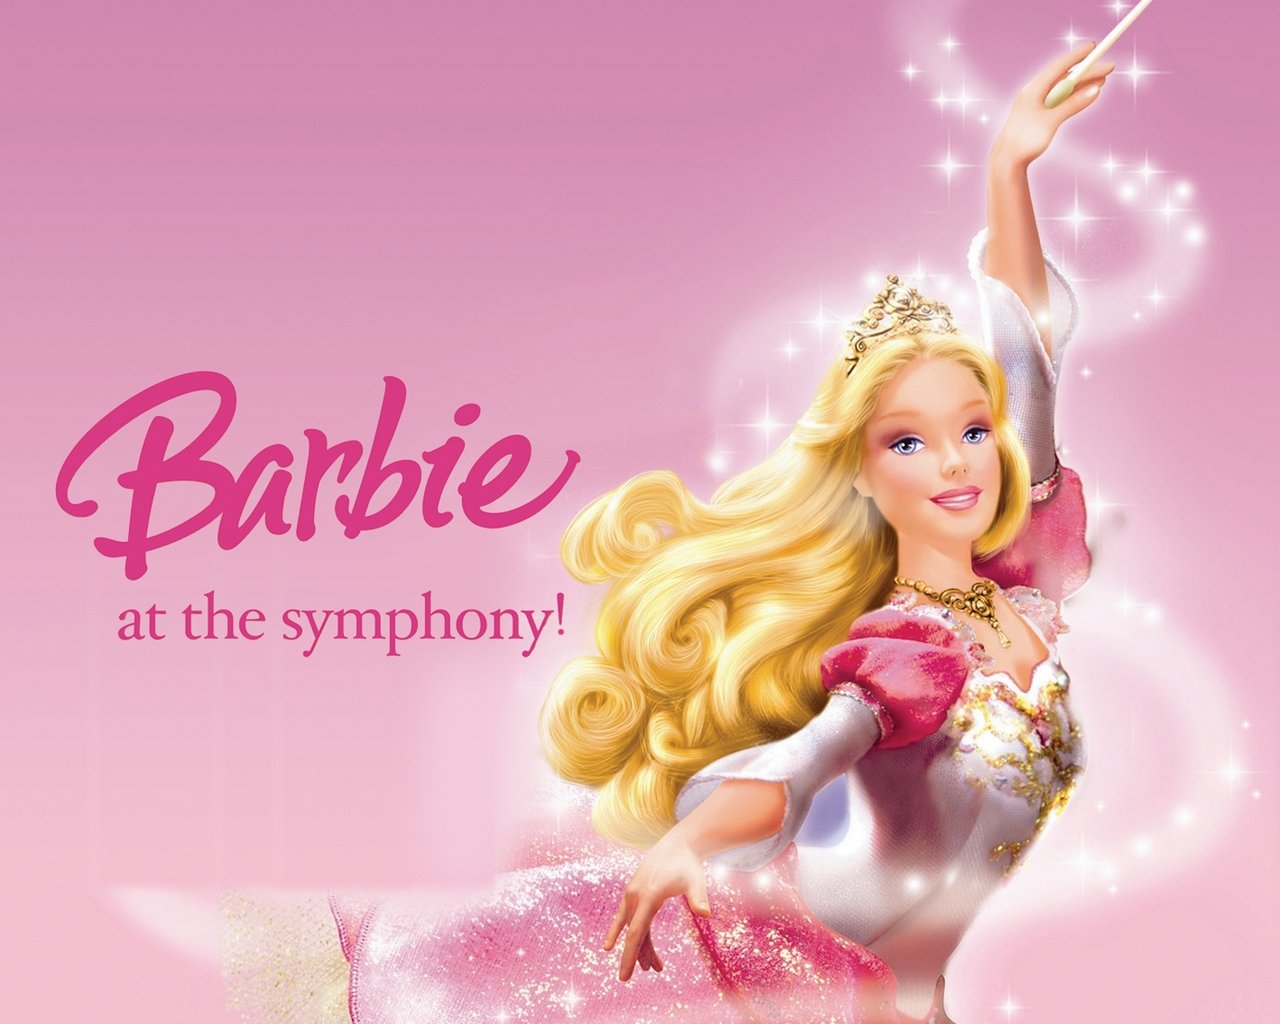 Barbie Princess Dancing - Barbie Princess Dancing